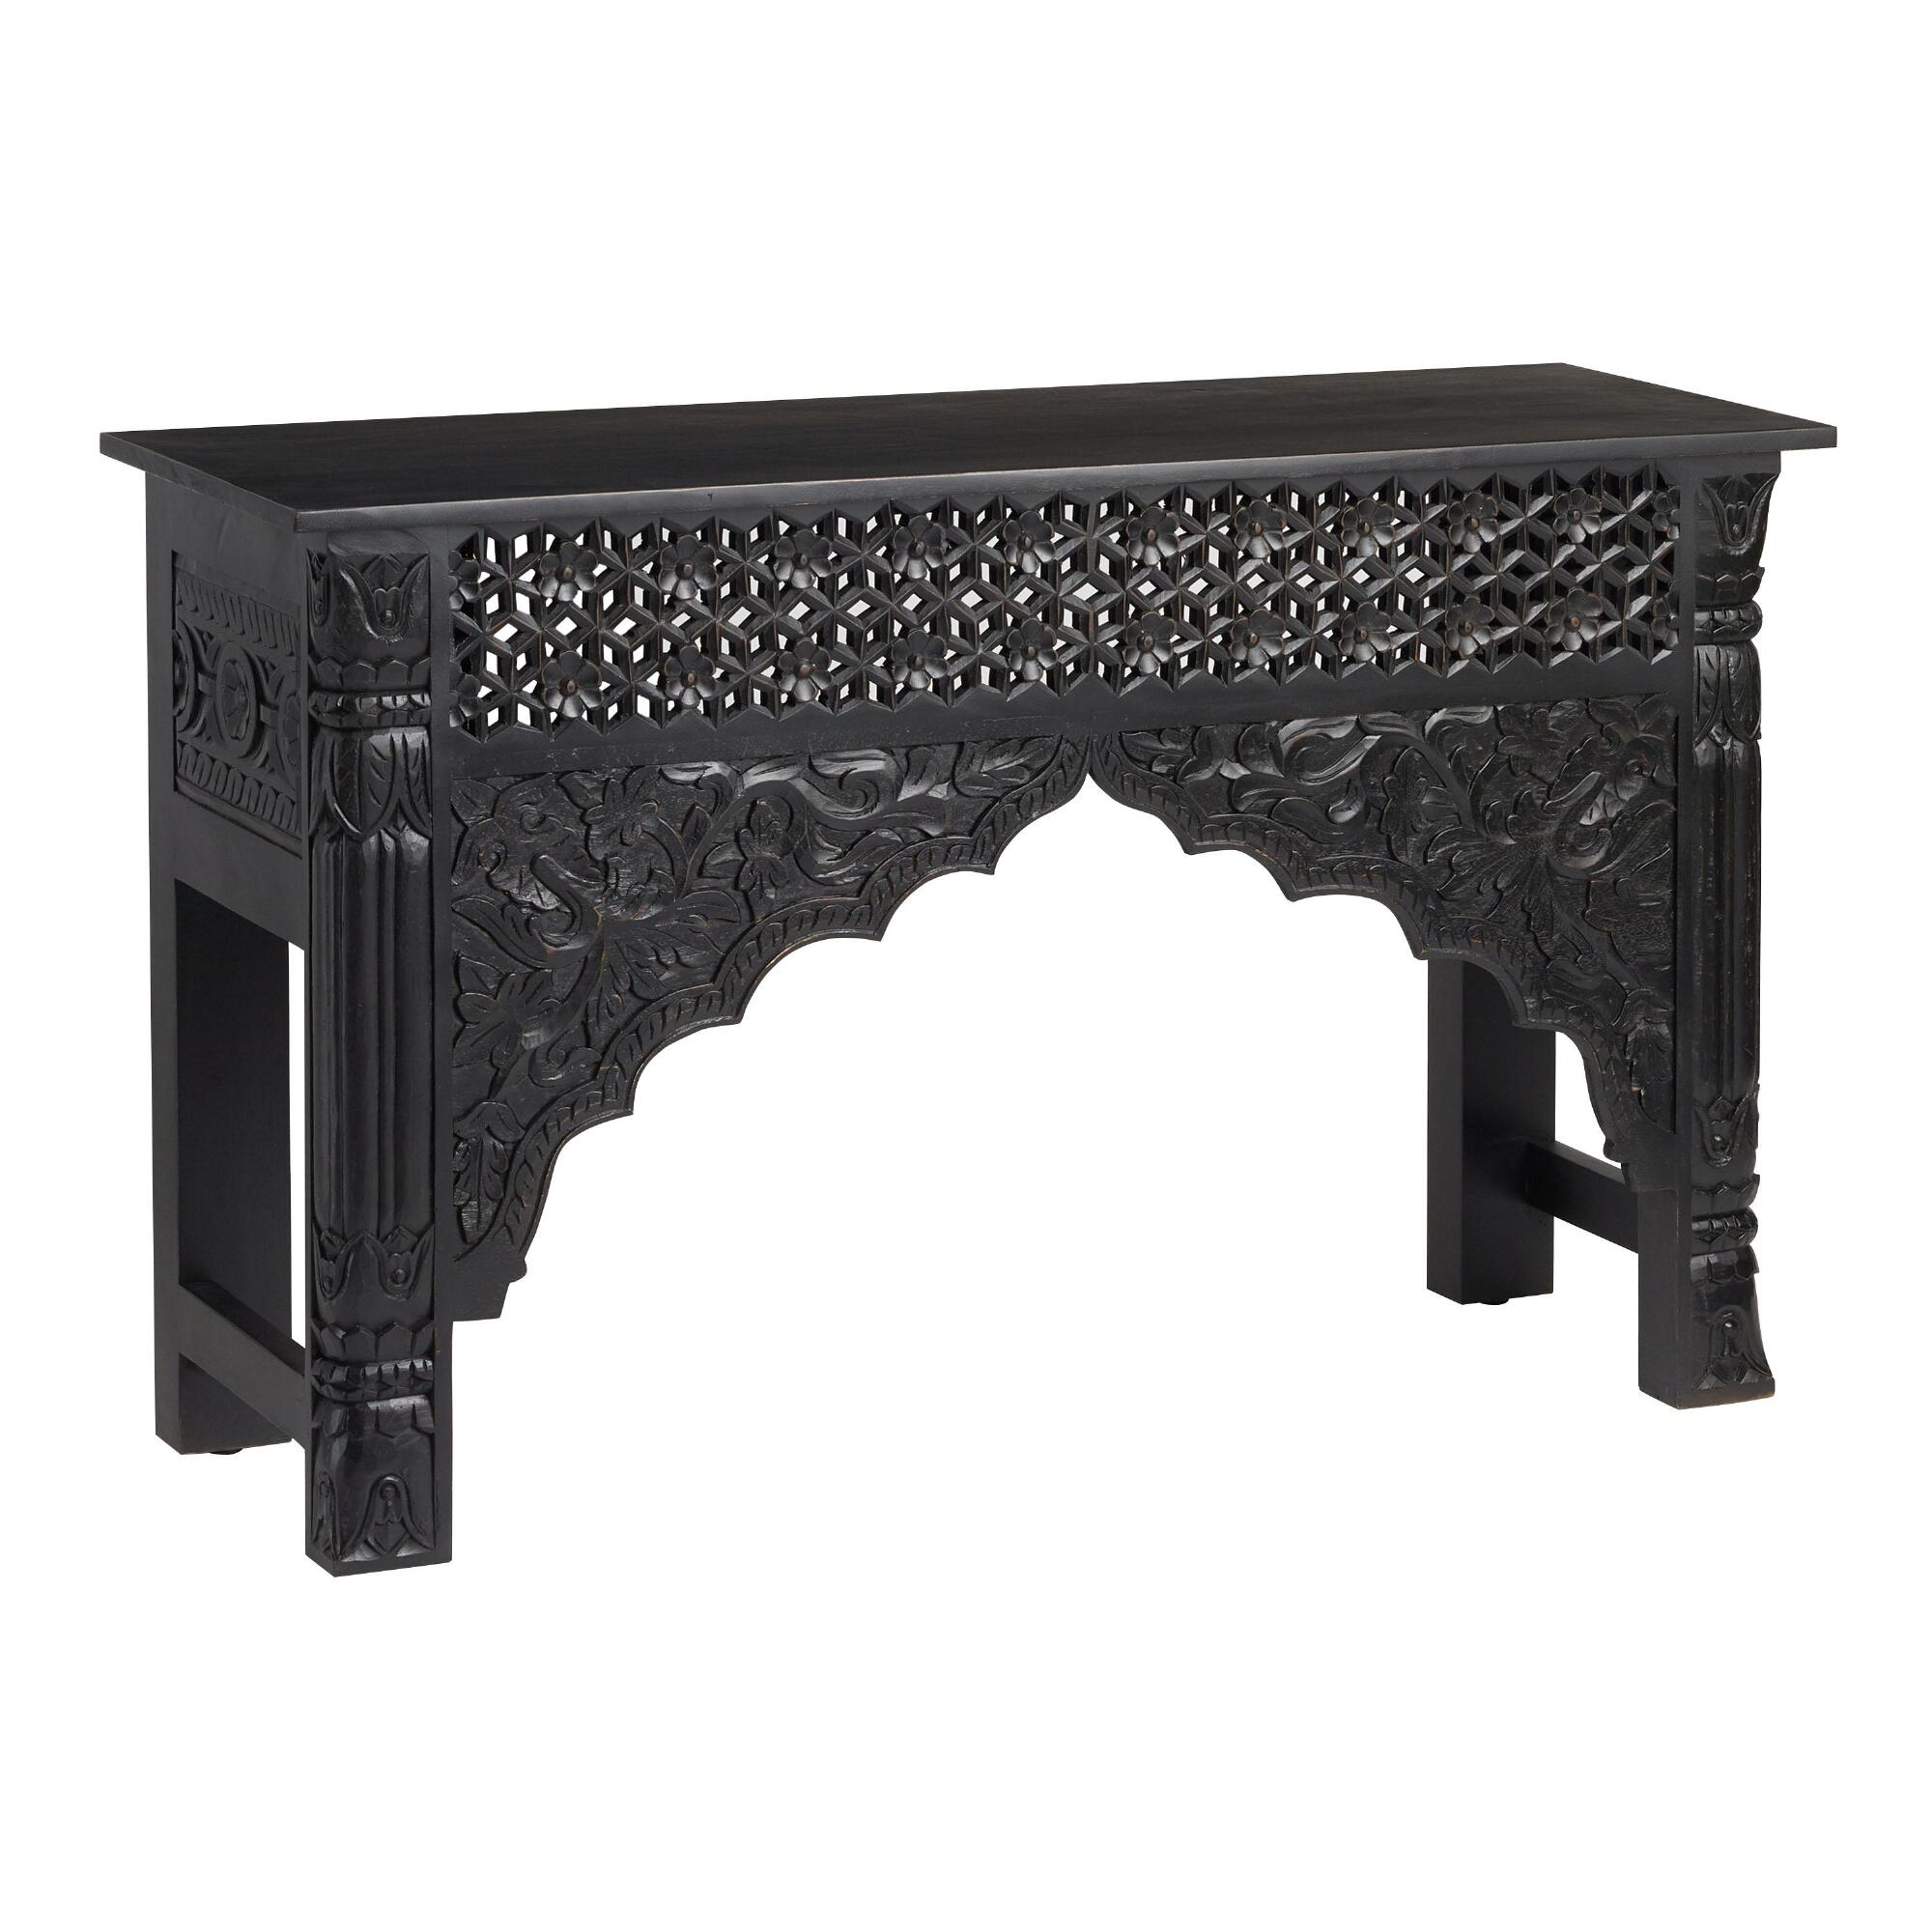 Black Carved Wood Console Table $599.99